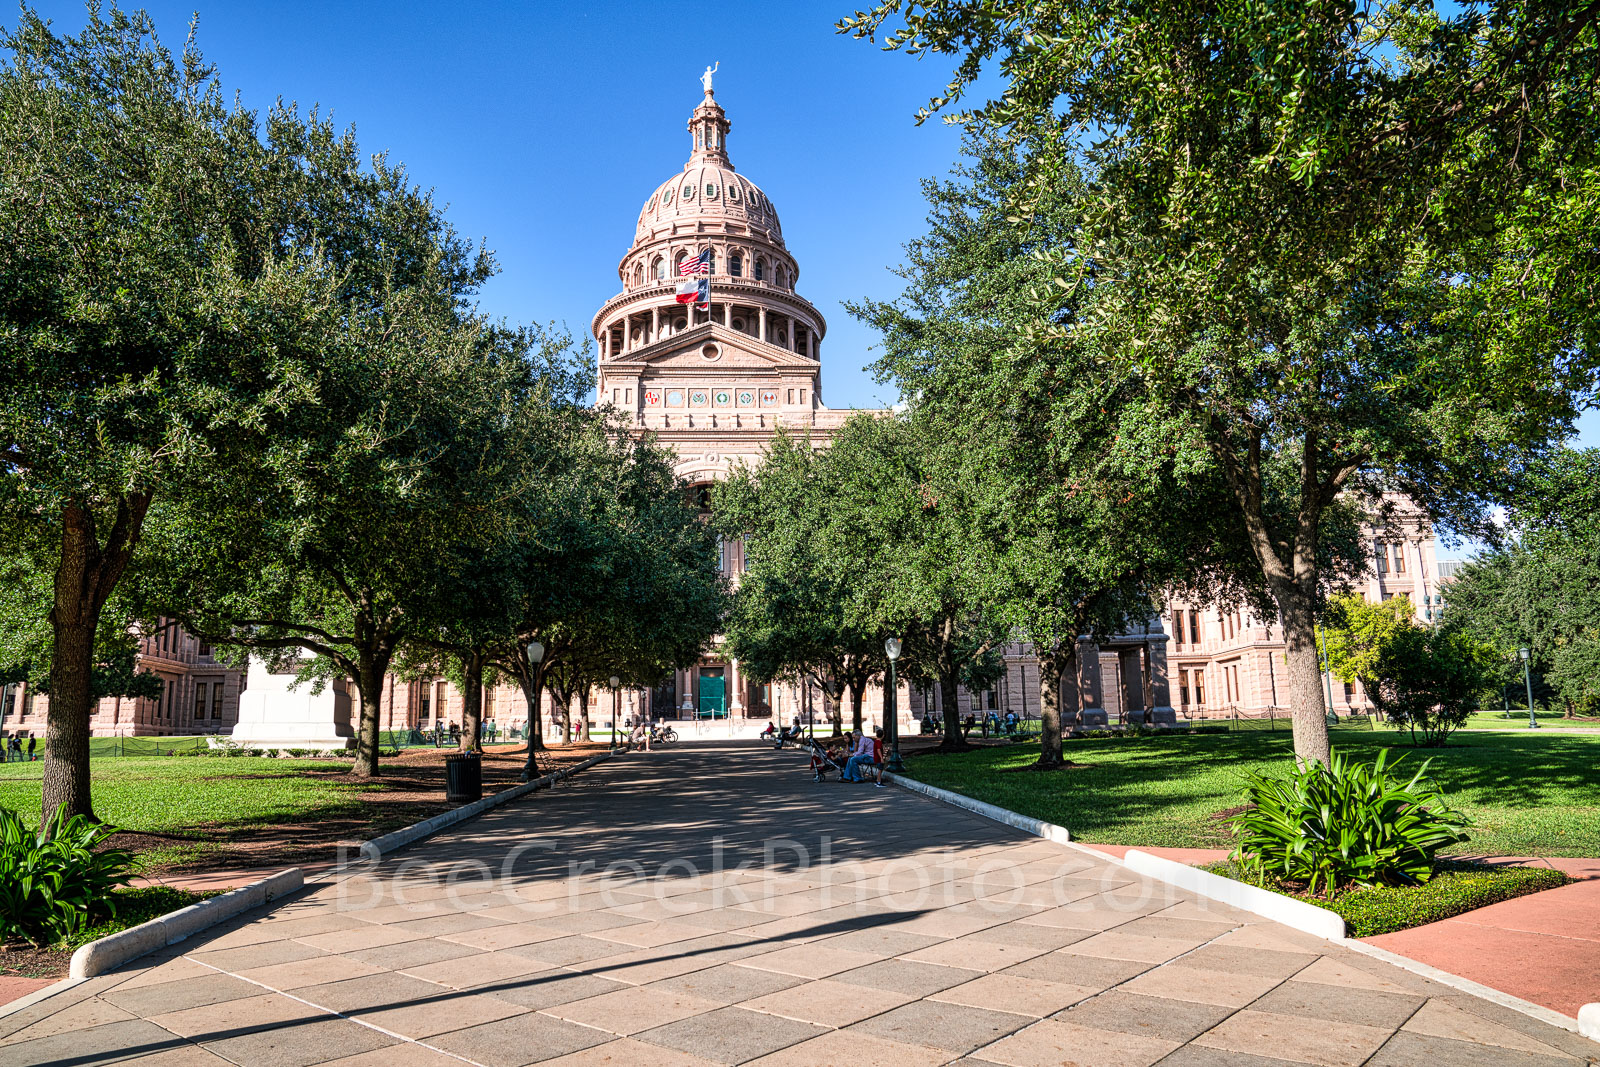 Capitol of Texas Great Walk - The Texas Capitol in downtown Austin through the trees from the South view with this wonderful...